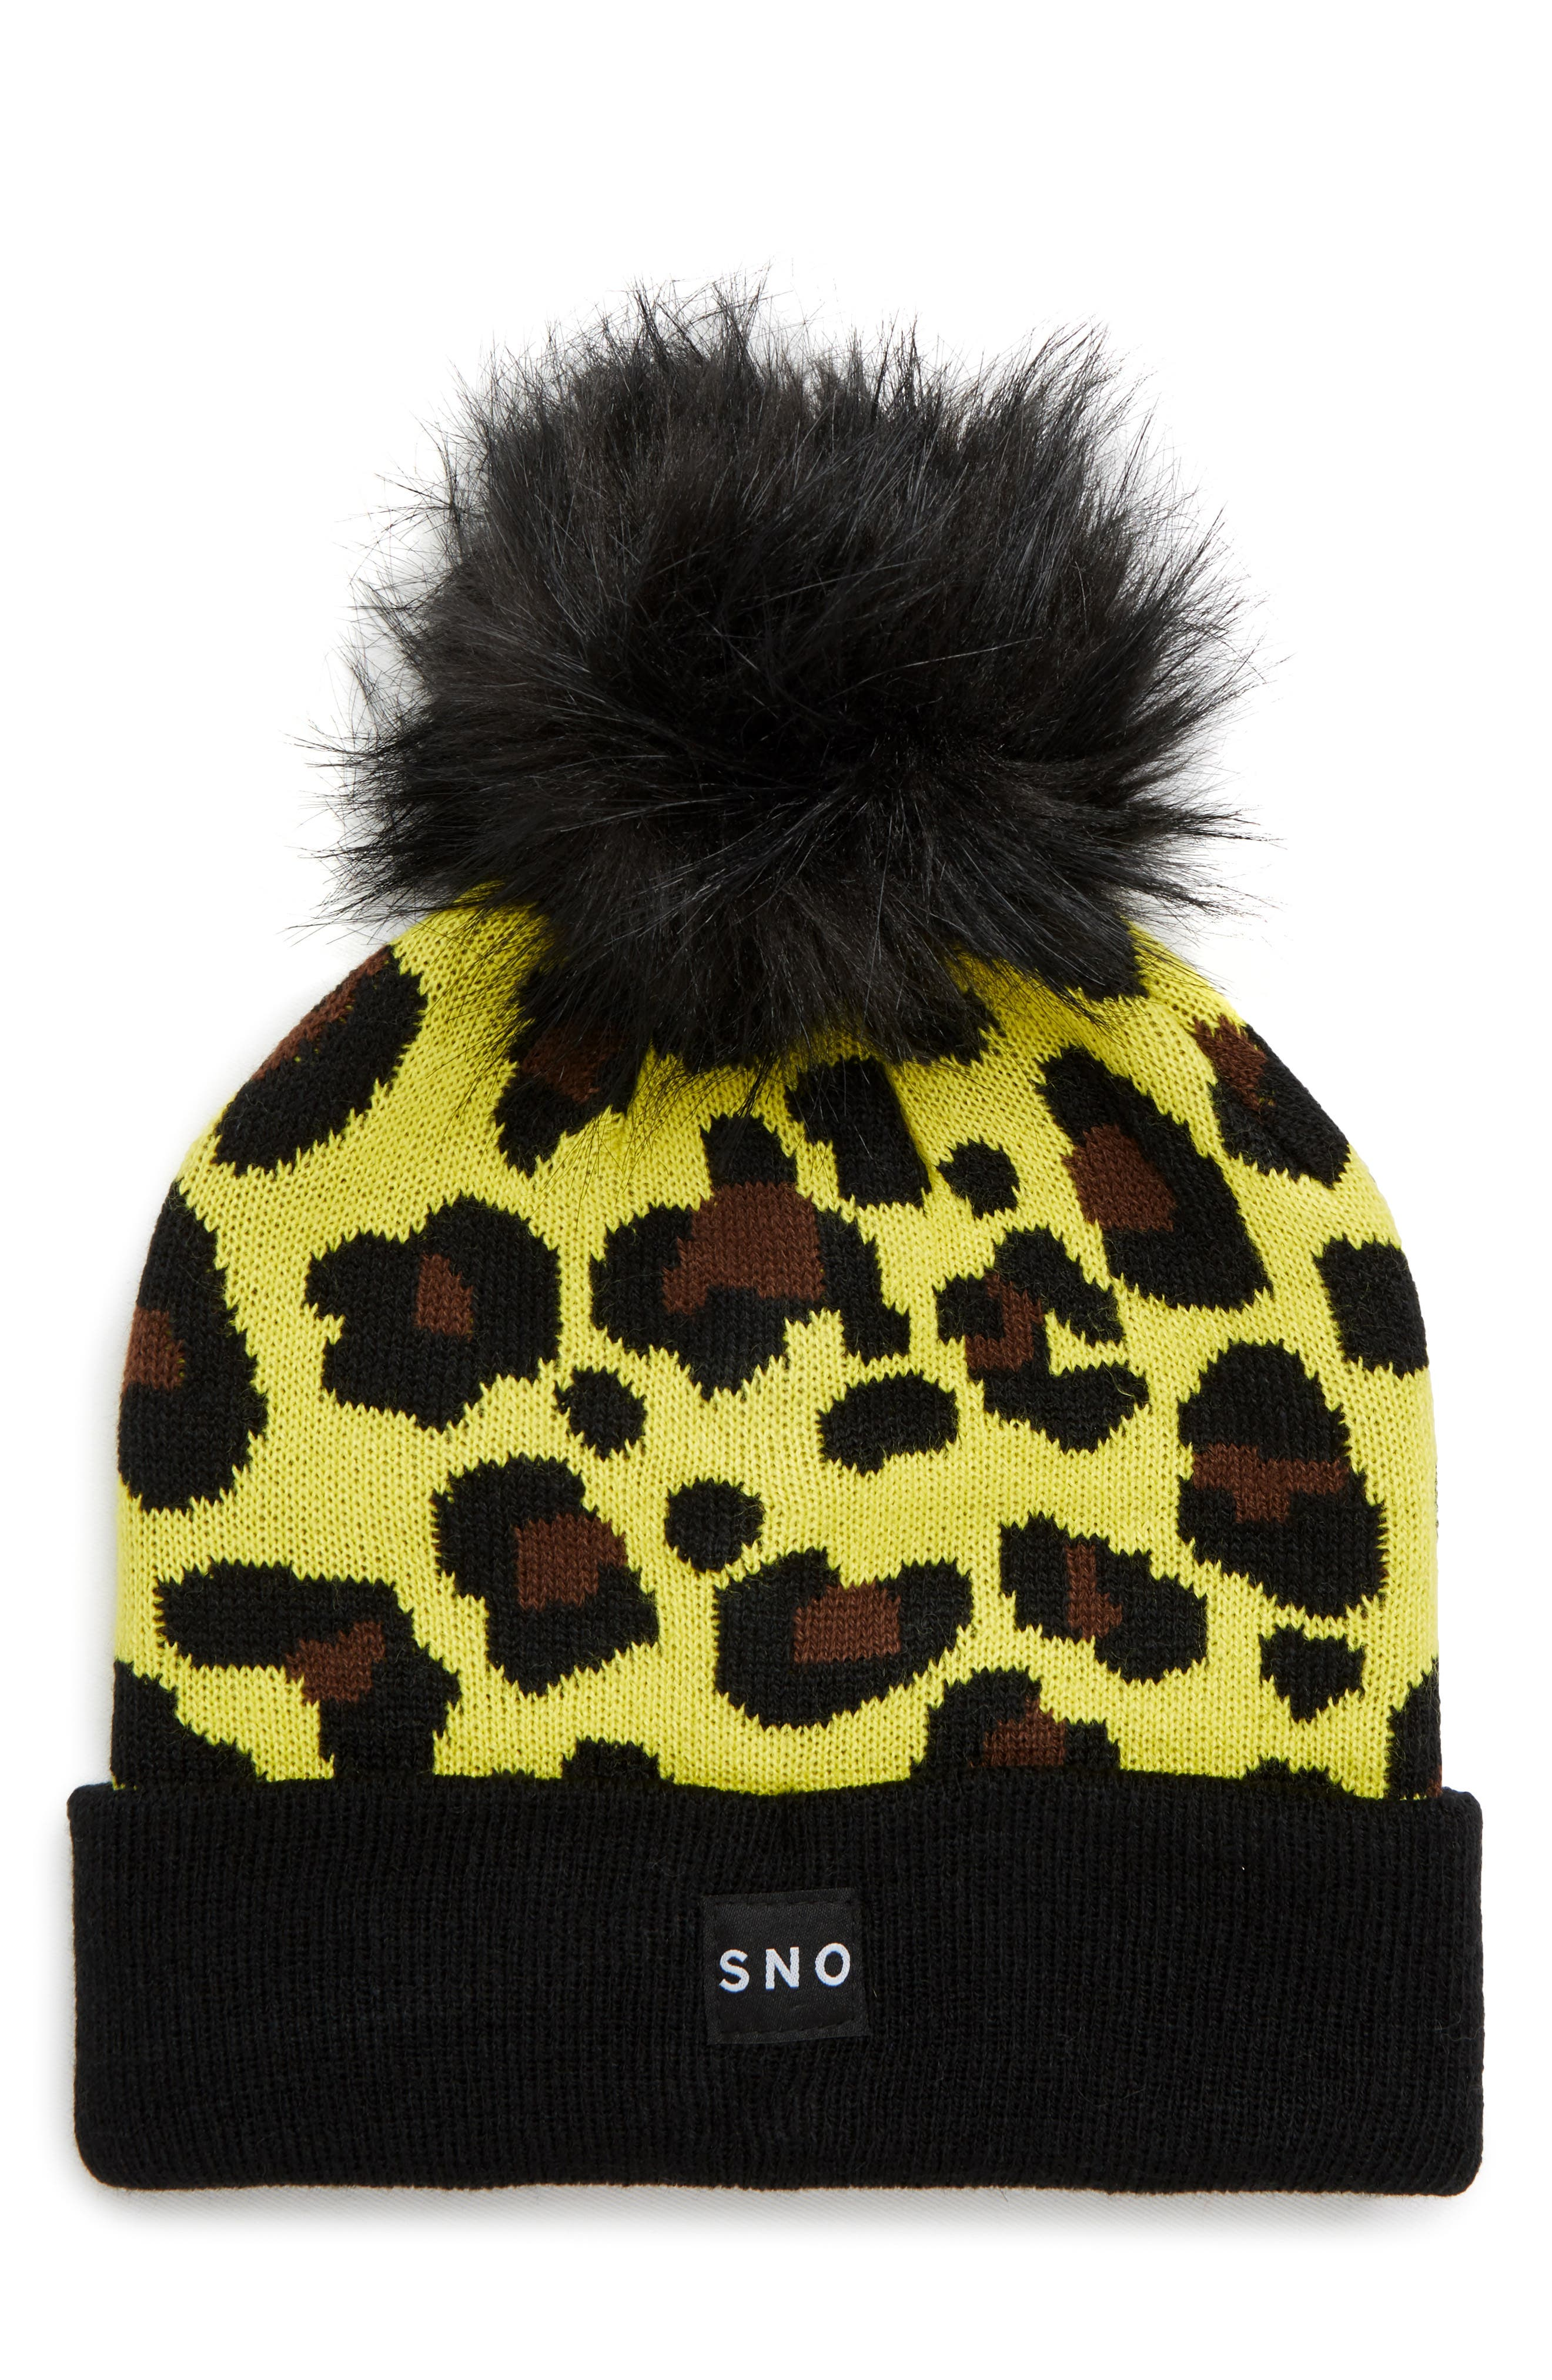 Sno Beanie with Faux Fur Pompom,                             Main thumbnail 1, color,                             BLACK MULTI